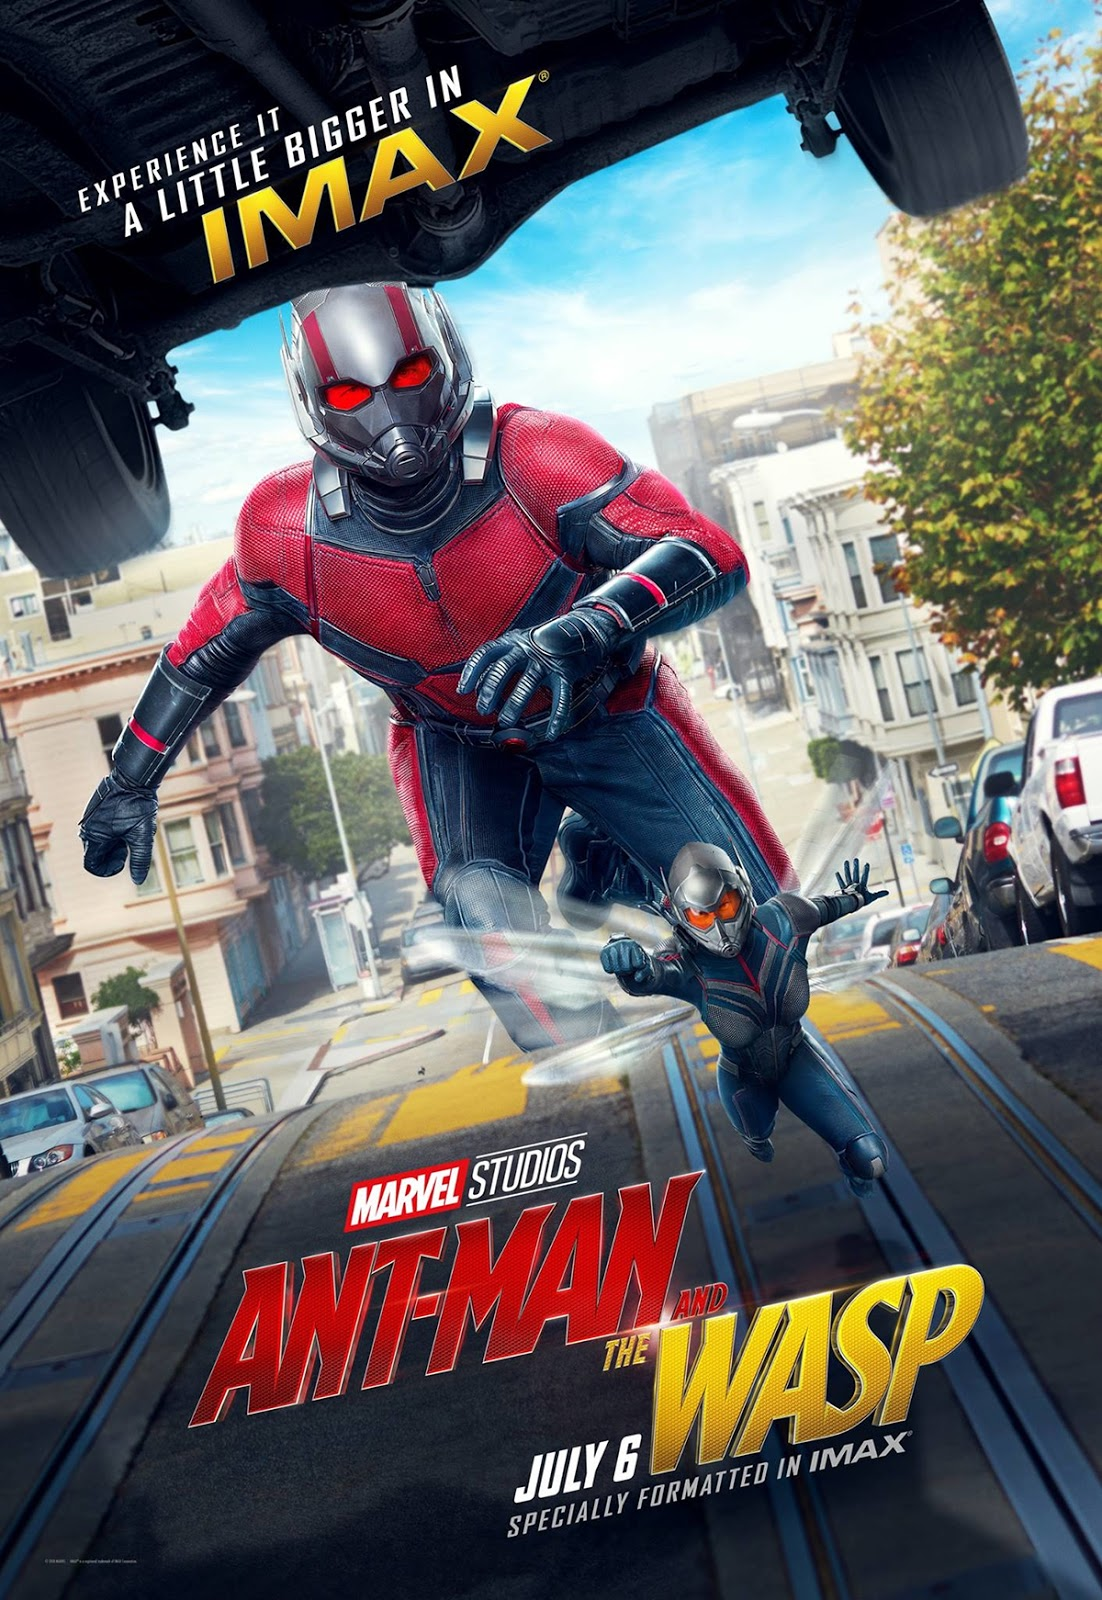 ant-man and the wasp full movie download in hd hindi 720p - filmywap